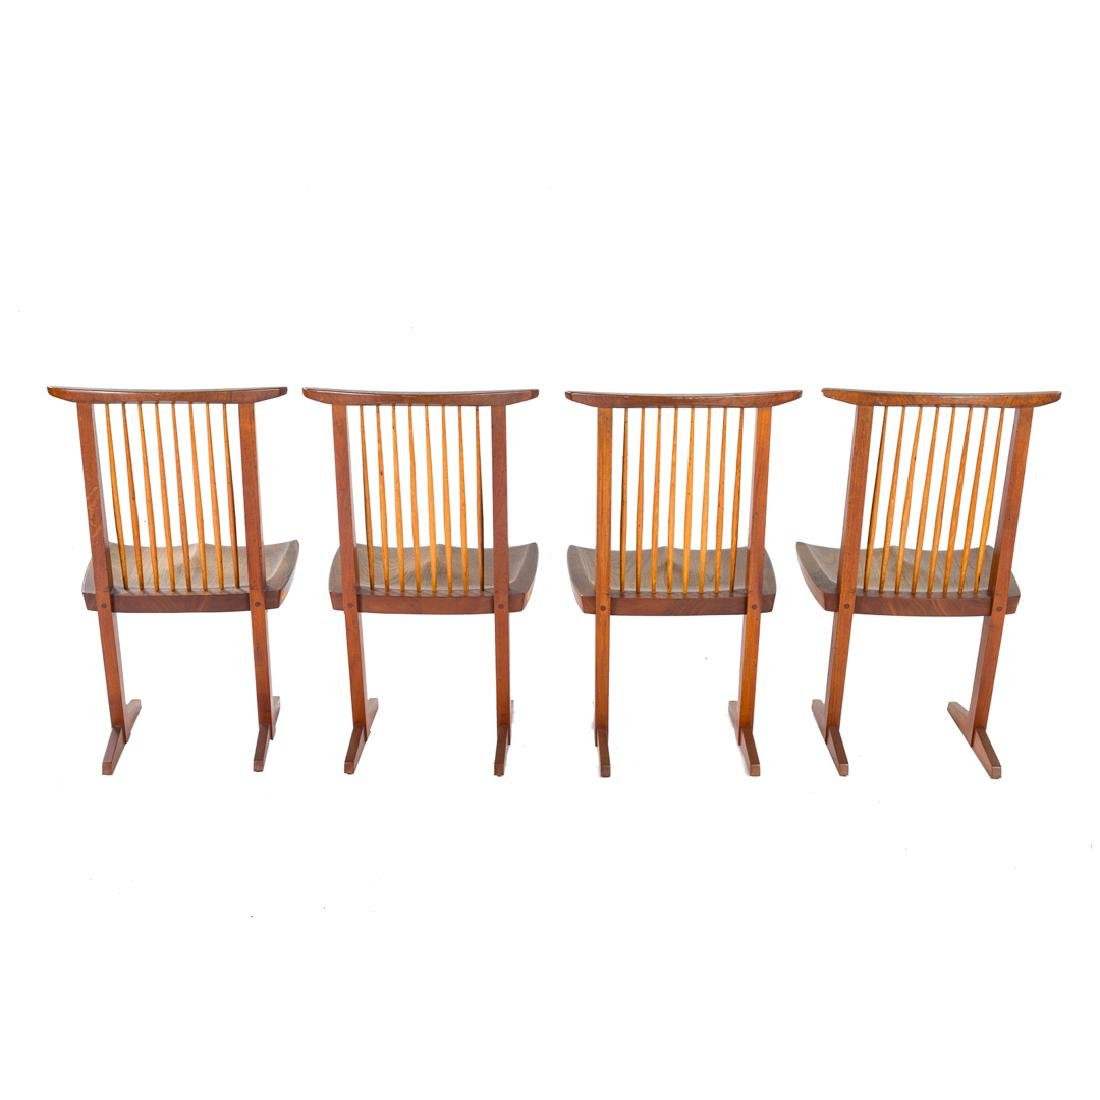 Set of Four George Nakashima Conoid Chairs - 4